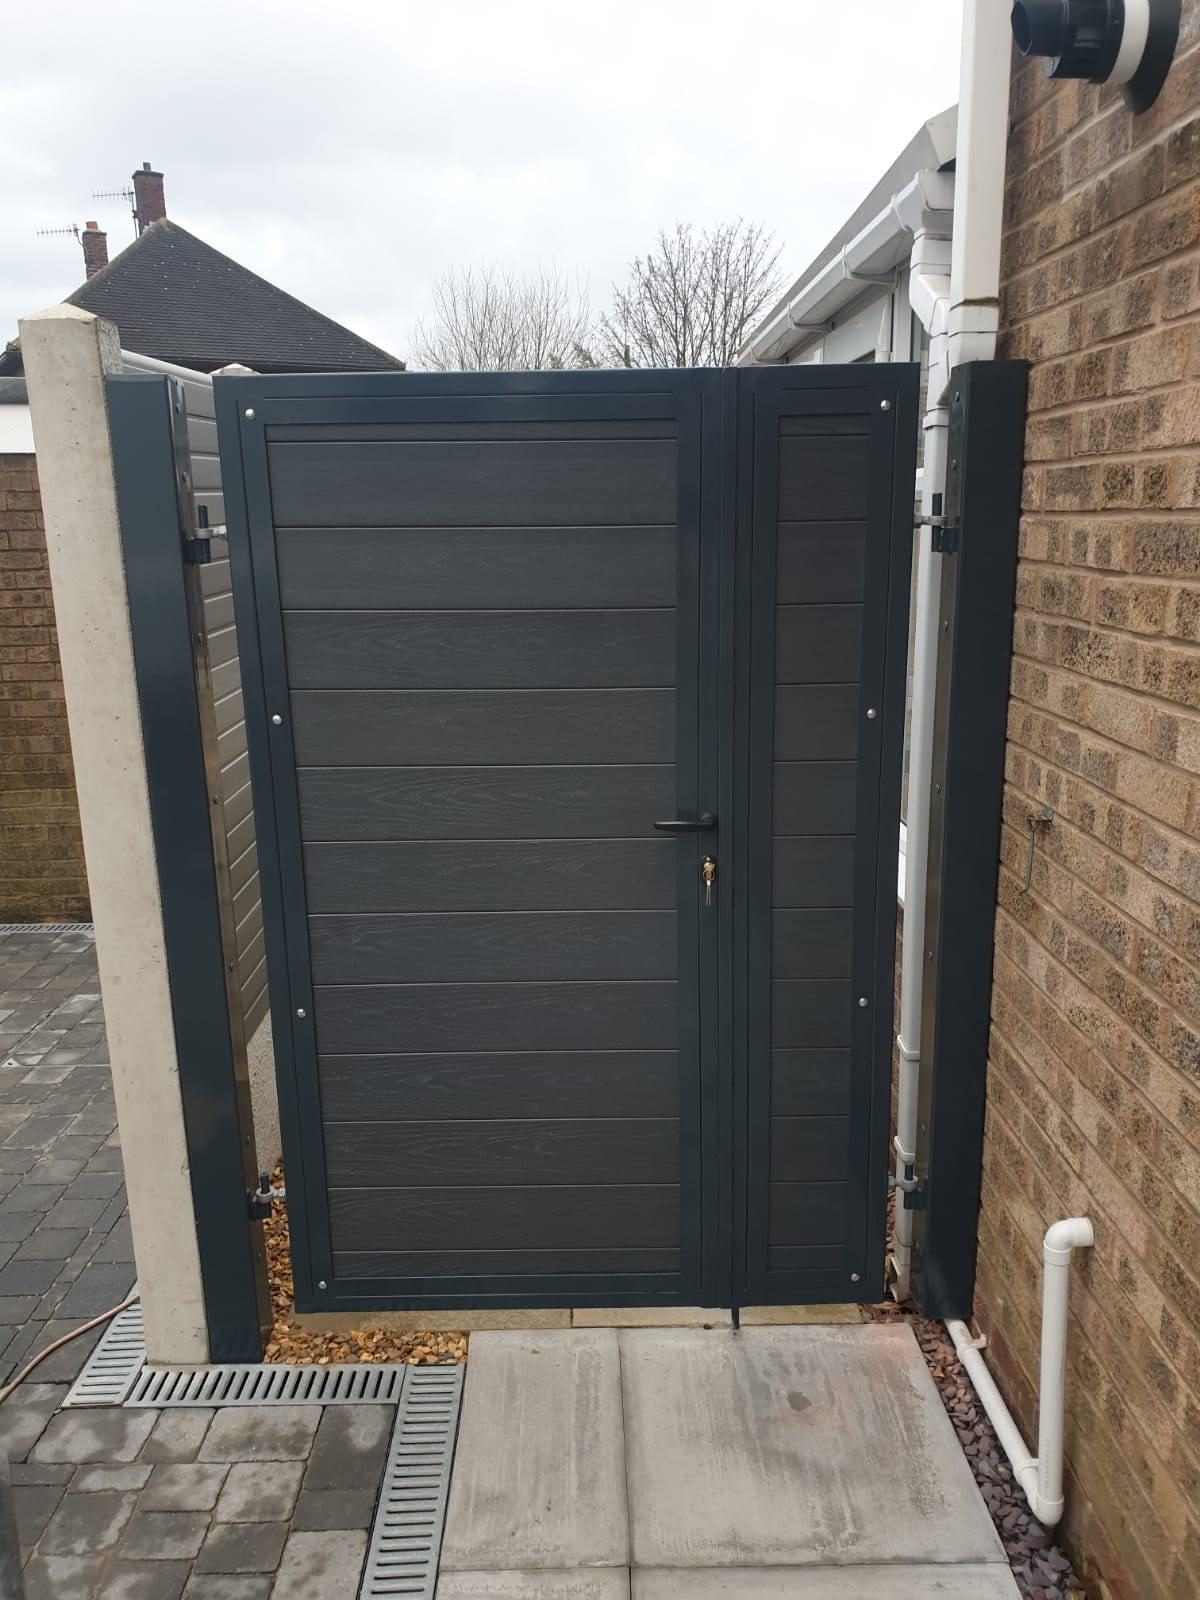 Saphire - Pedestrian gate with a composite infill, powder coated in anthracite grey with an infill panel to match